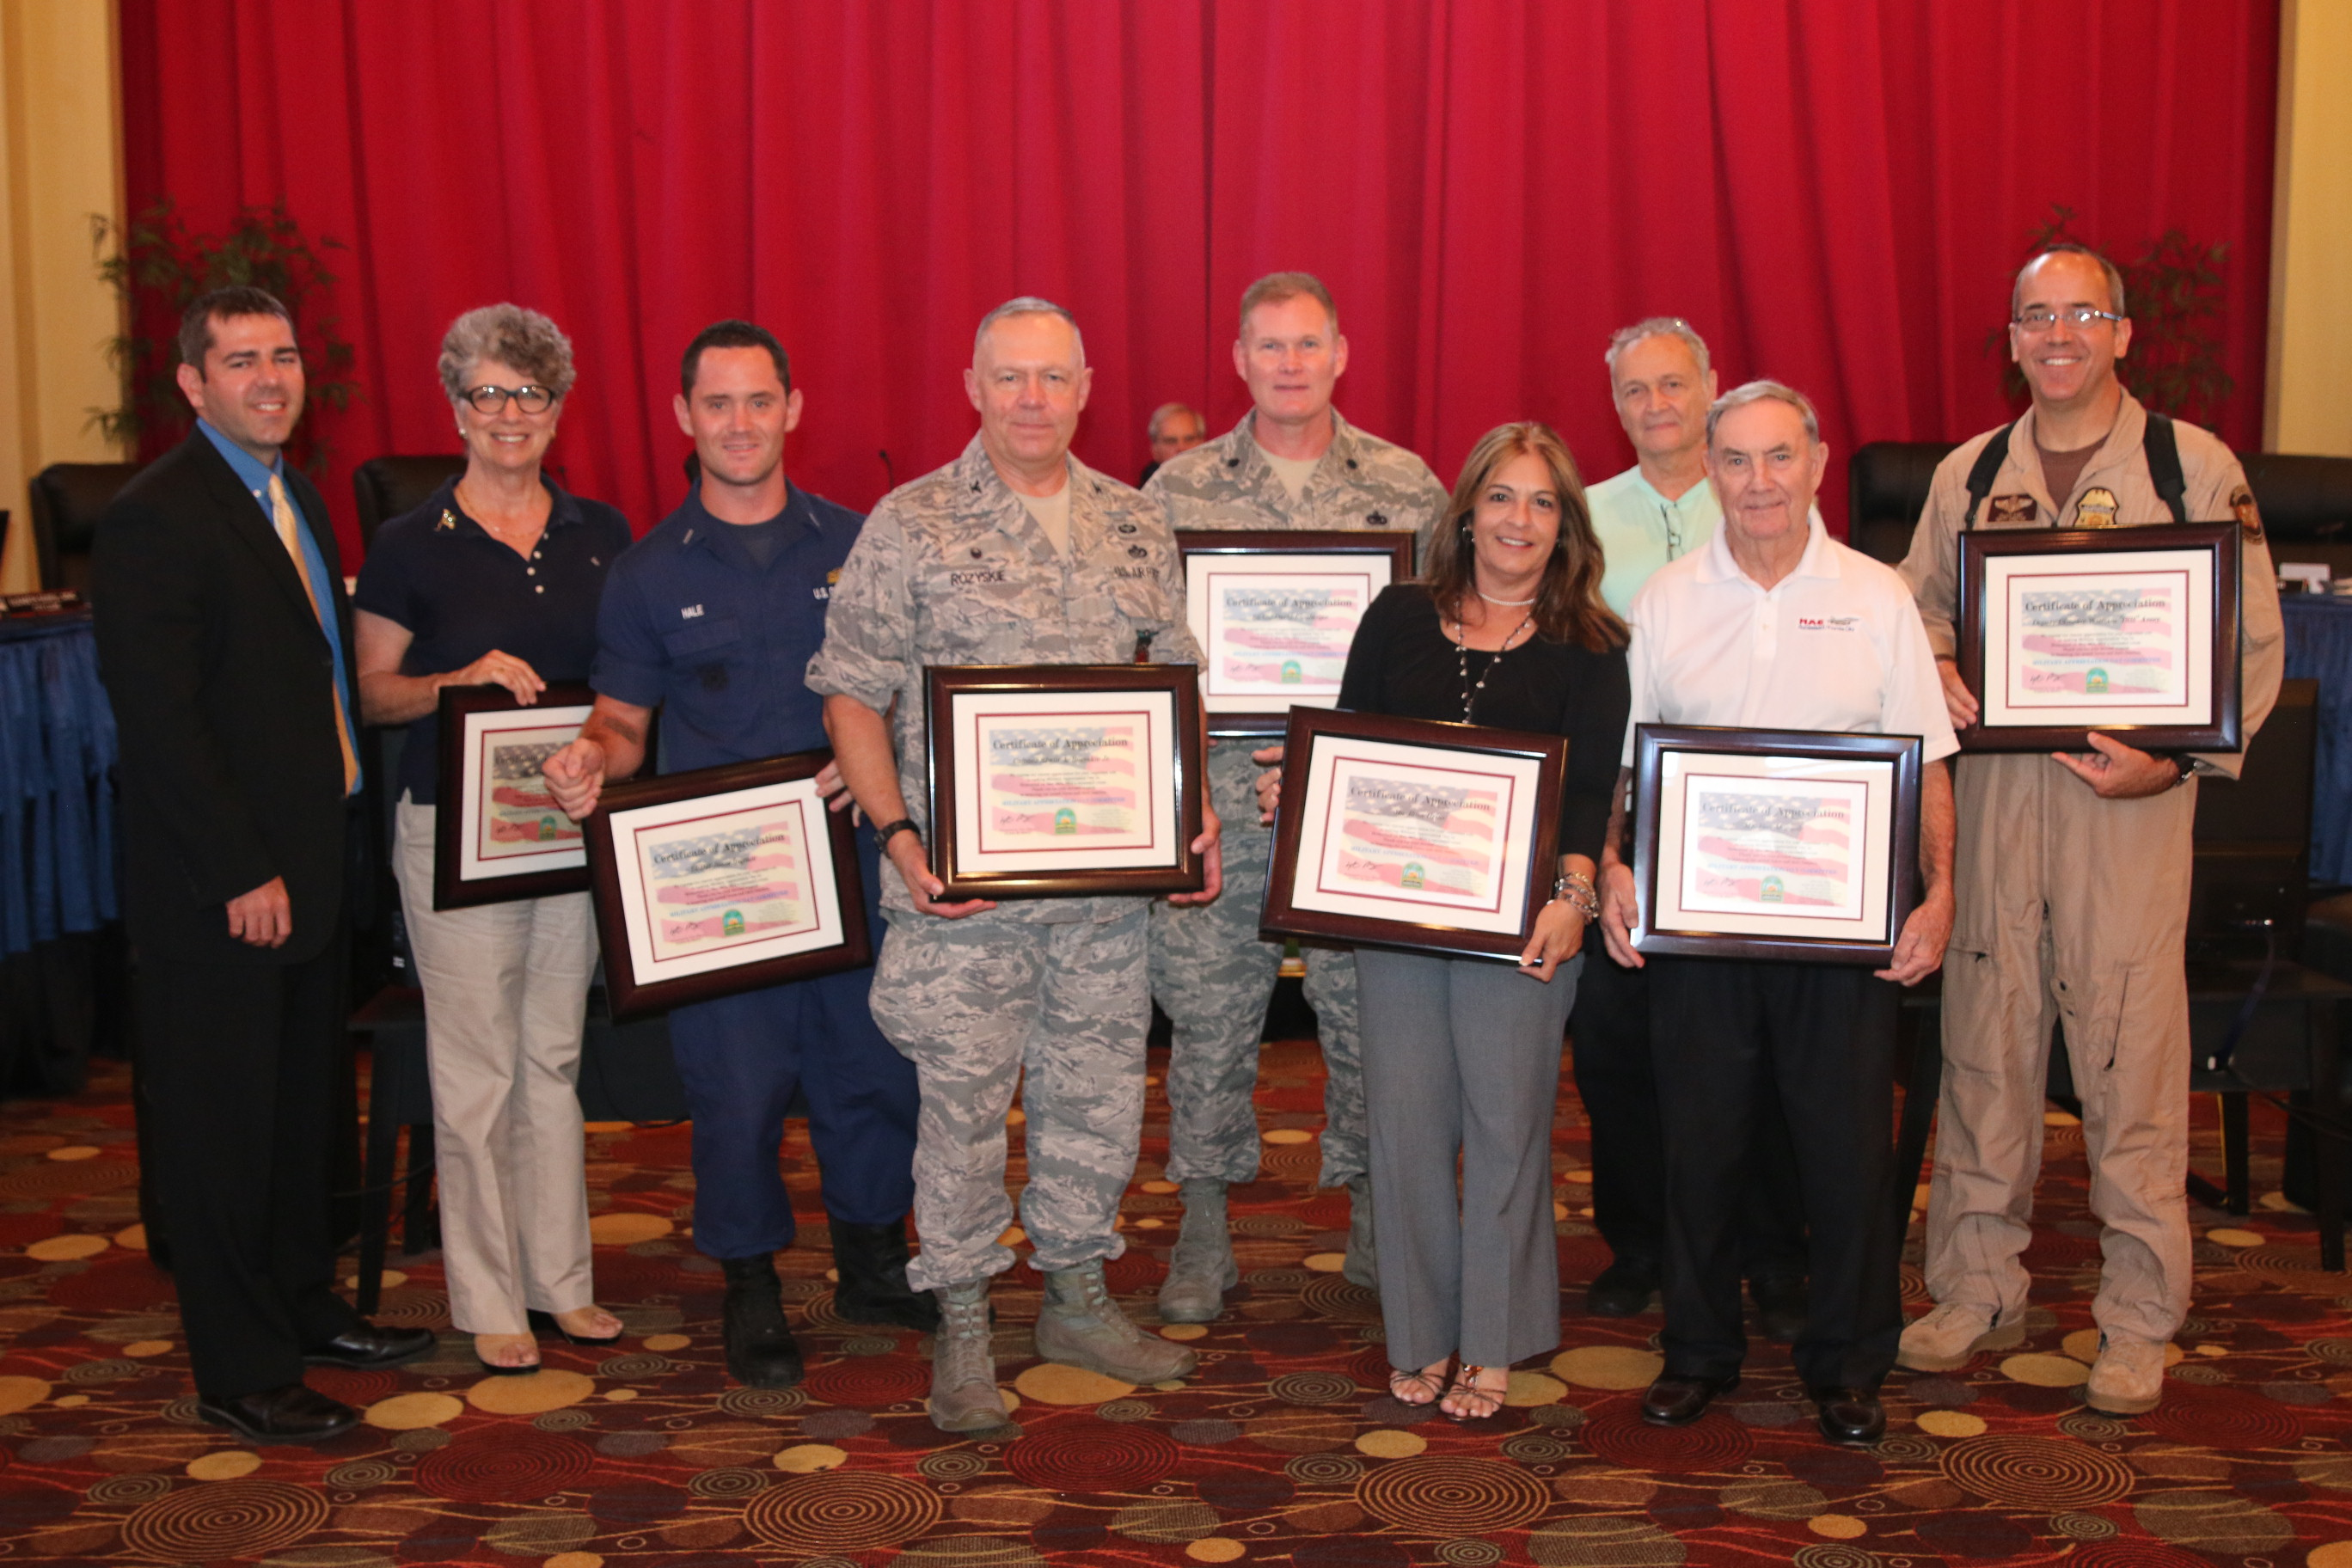 Vice Mayor Shelley Honors Military Appreciation Day Committee